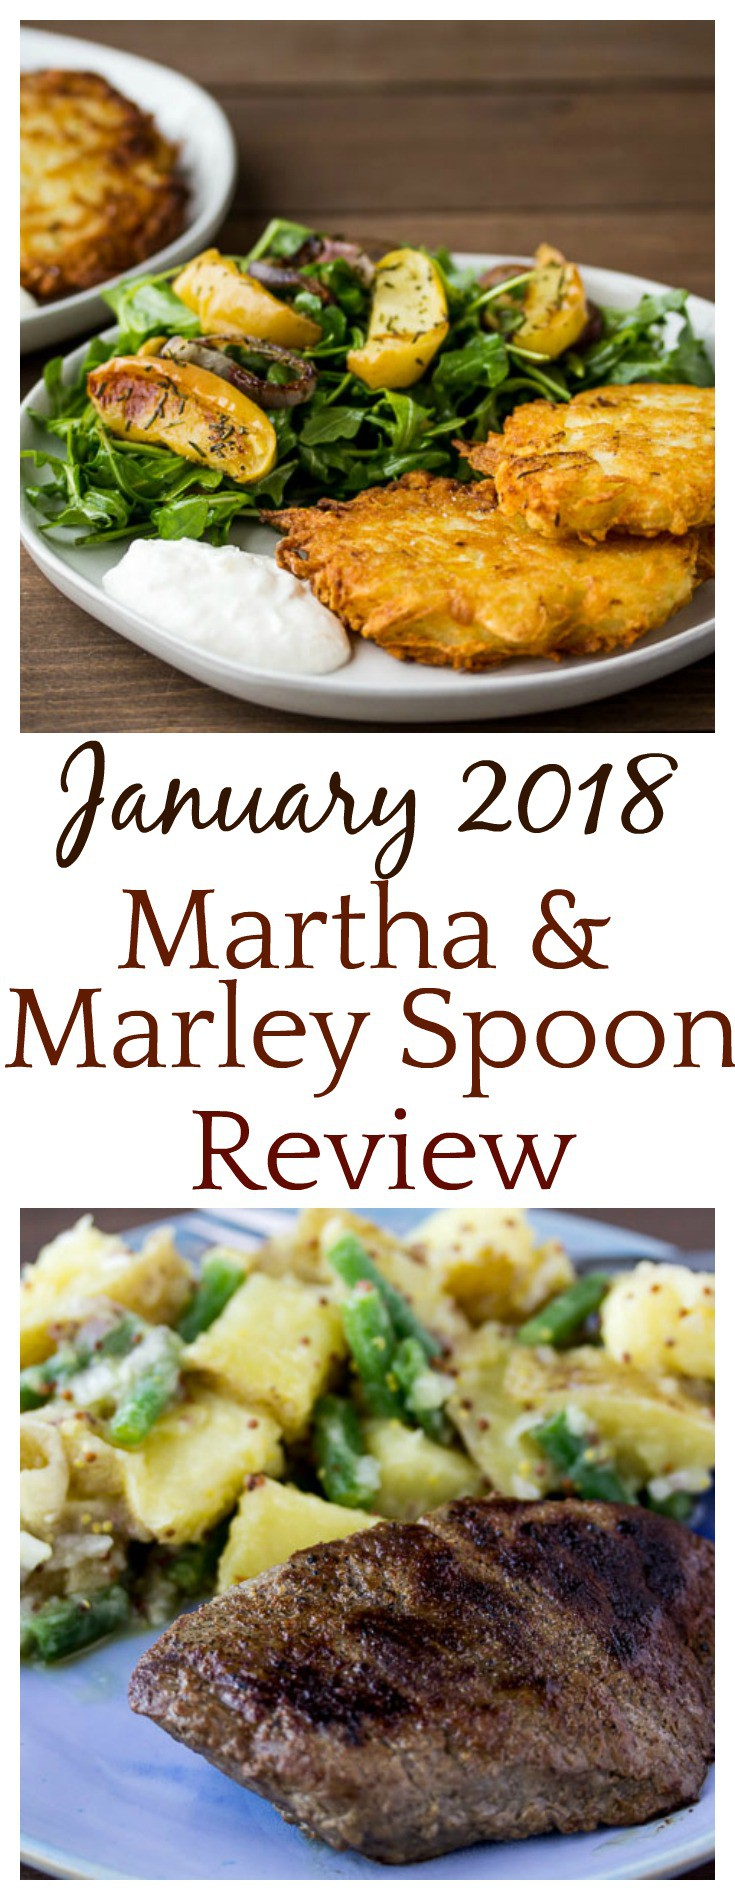 Interested in trying meal kit subscriptions? Definitely check out this Martha & Marley Spoon Review! The recipes were amazing! | #marthamarleyspoon #marleyspoon #mealkits #subscriptionbox #mealkitreview